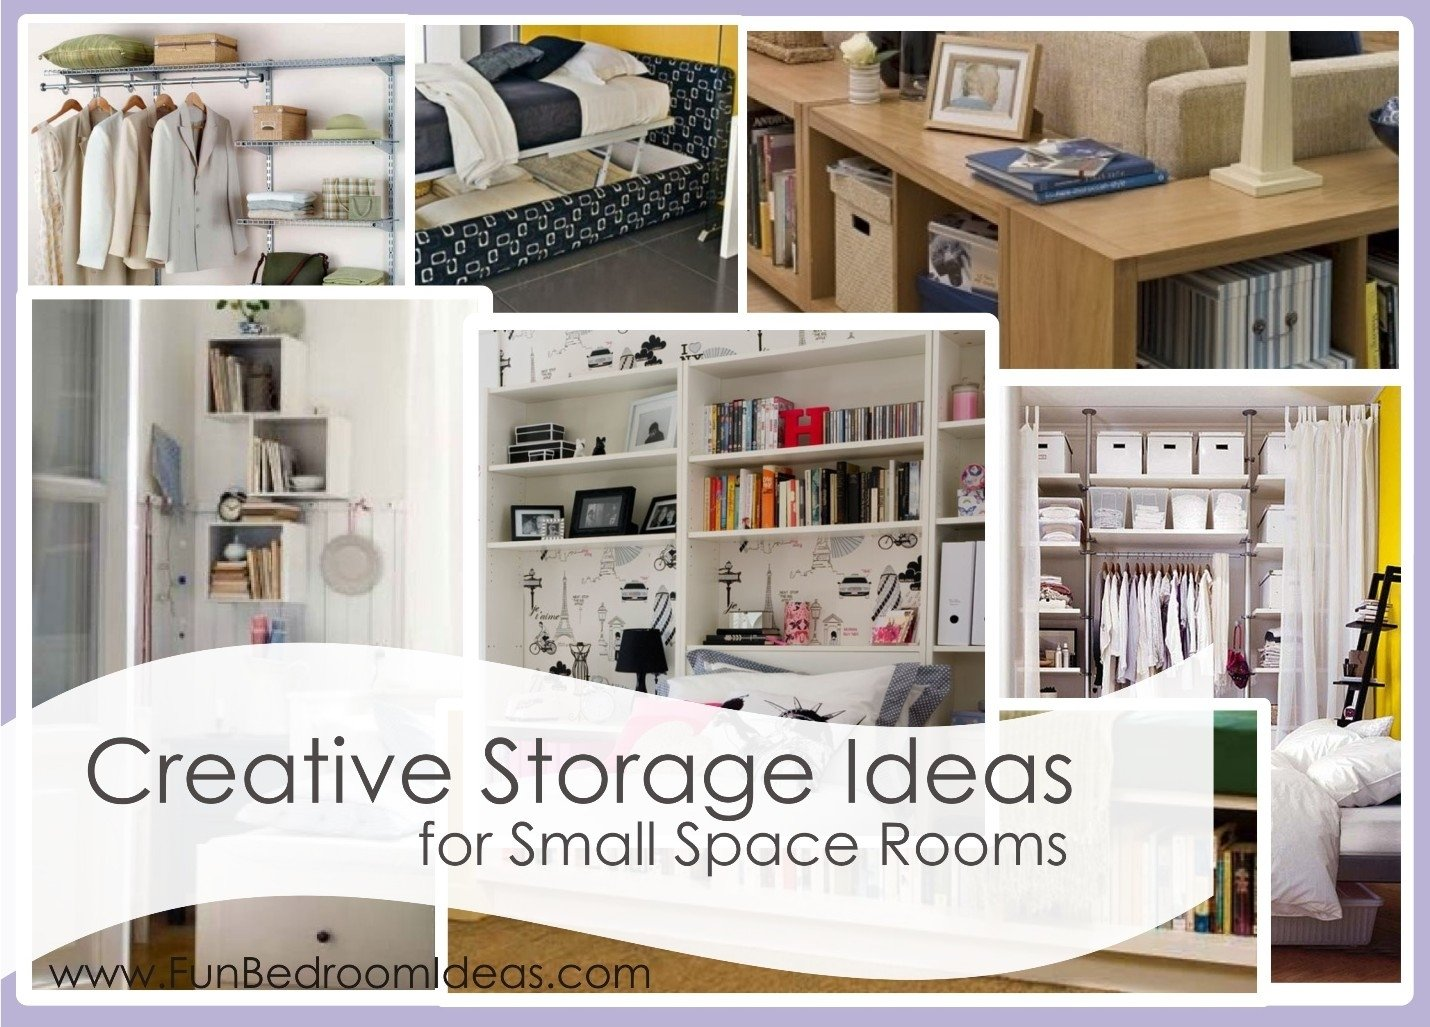 10 Nice Storage Ideas For Small Rooms small bedroom storage wardrobes ikea wardrobe storage solutions 2020